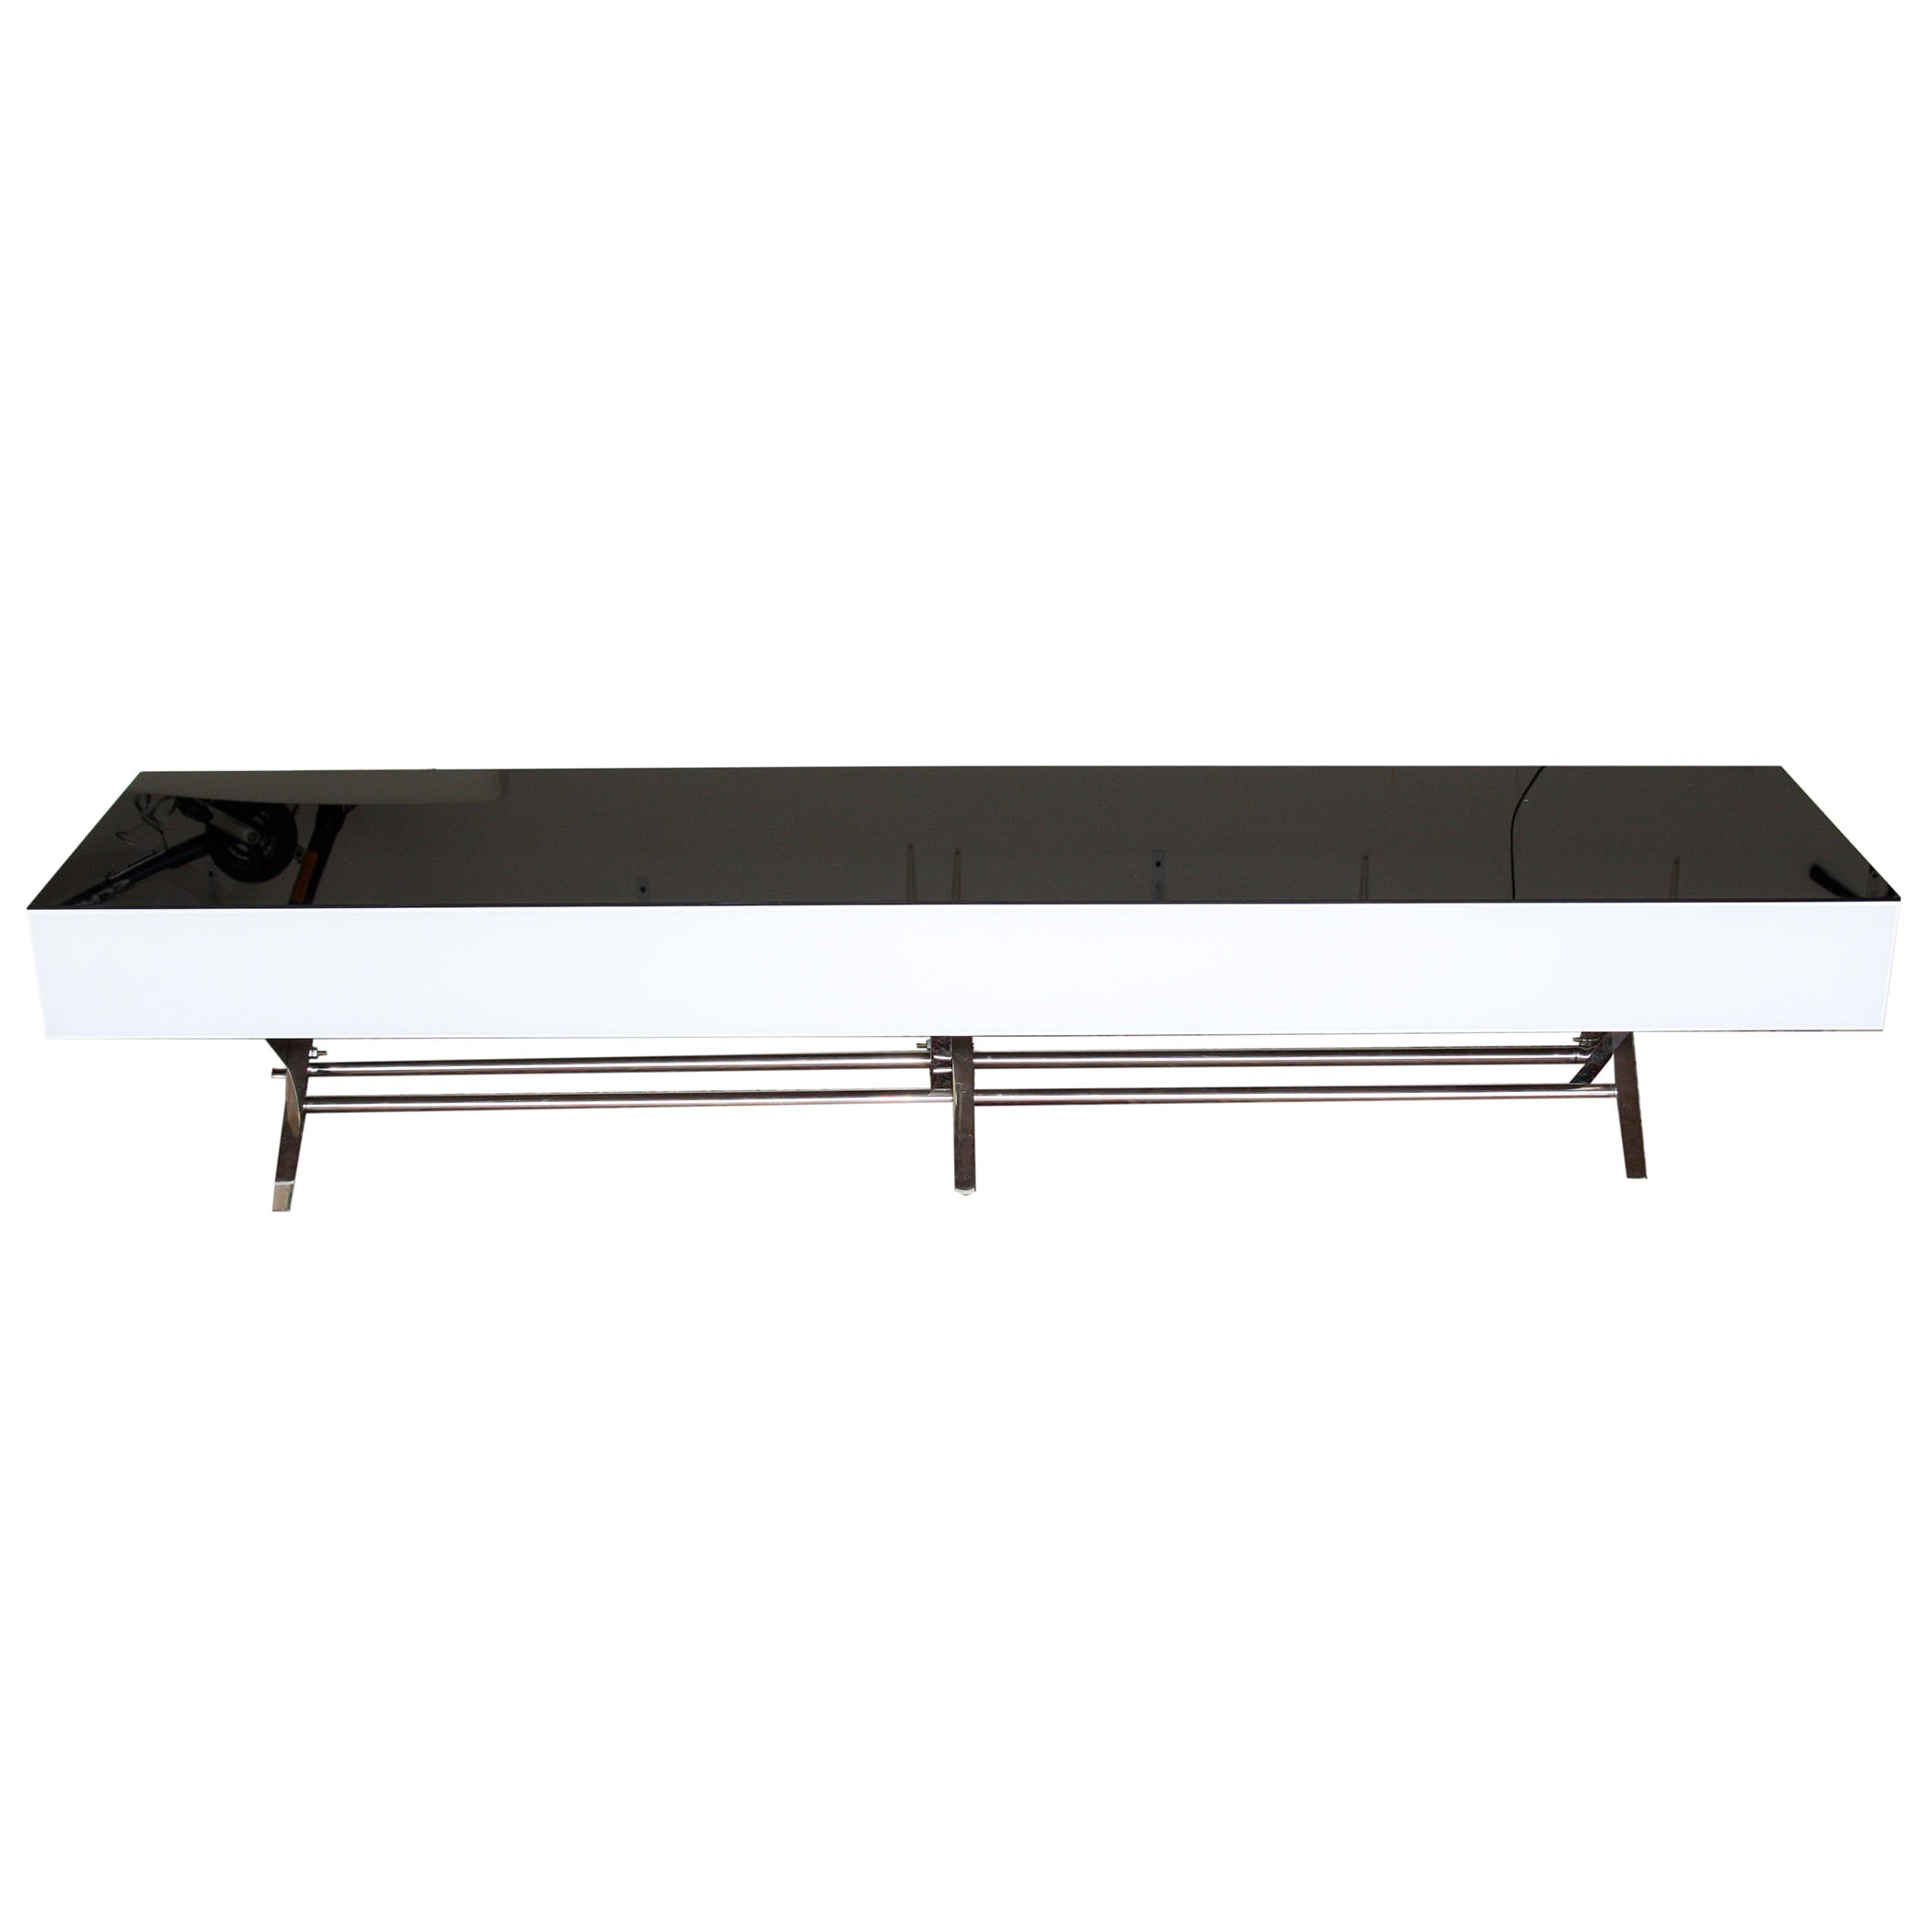 Modernist Rectangular Coffee Table with Storage